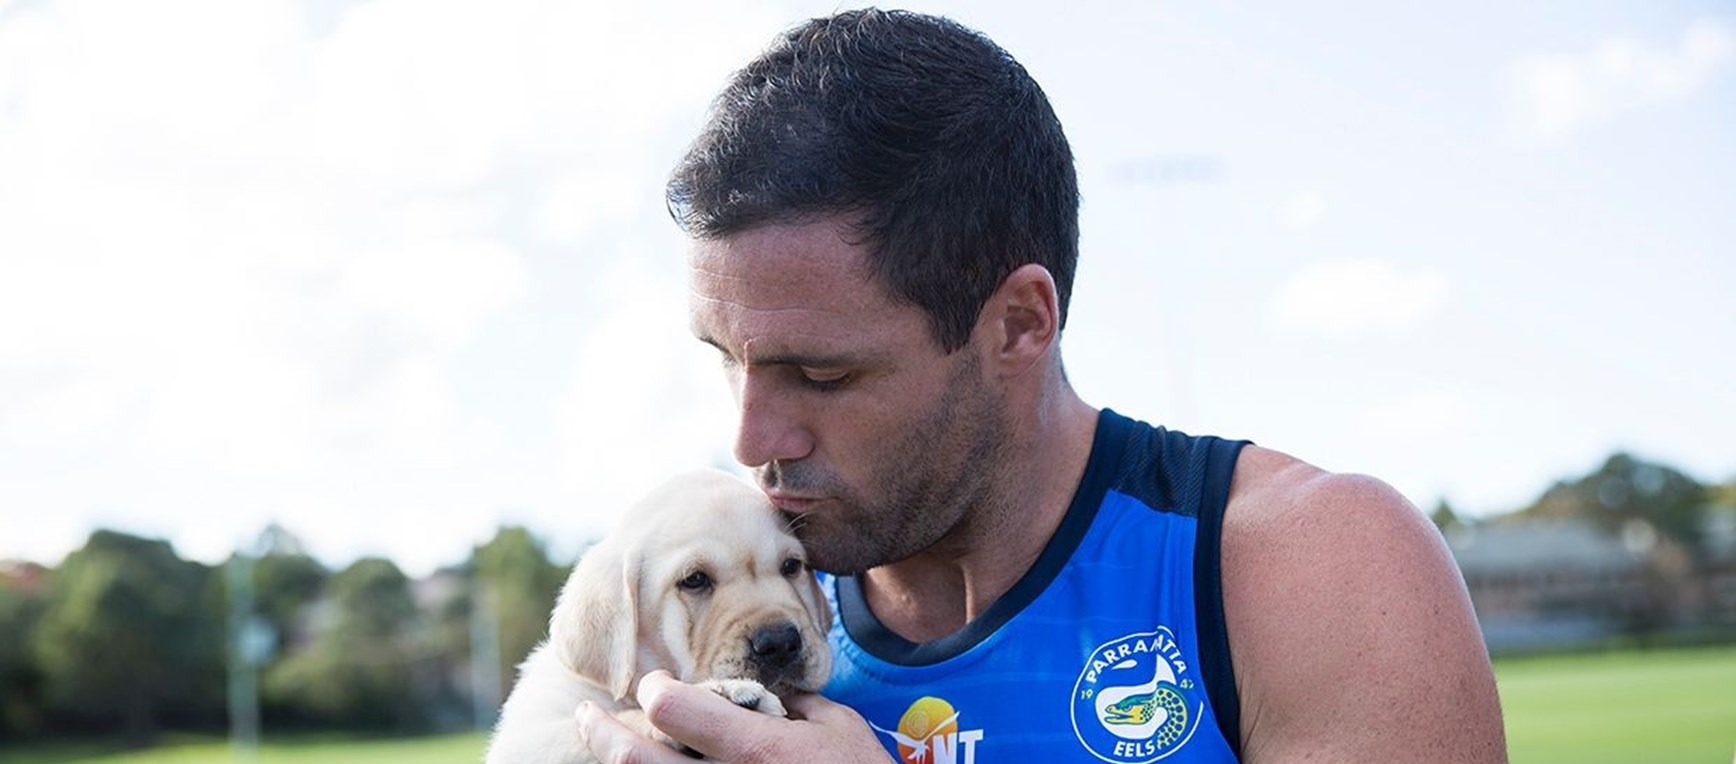 GALLERY | Guide Dogs NSW/ACT